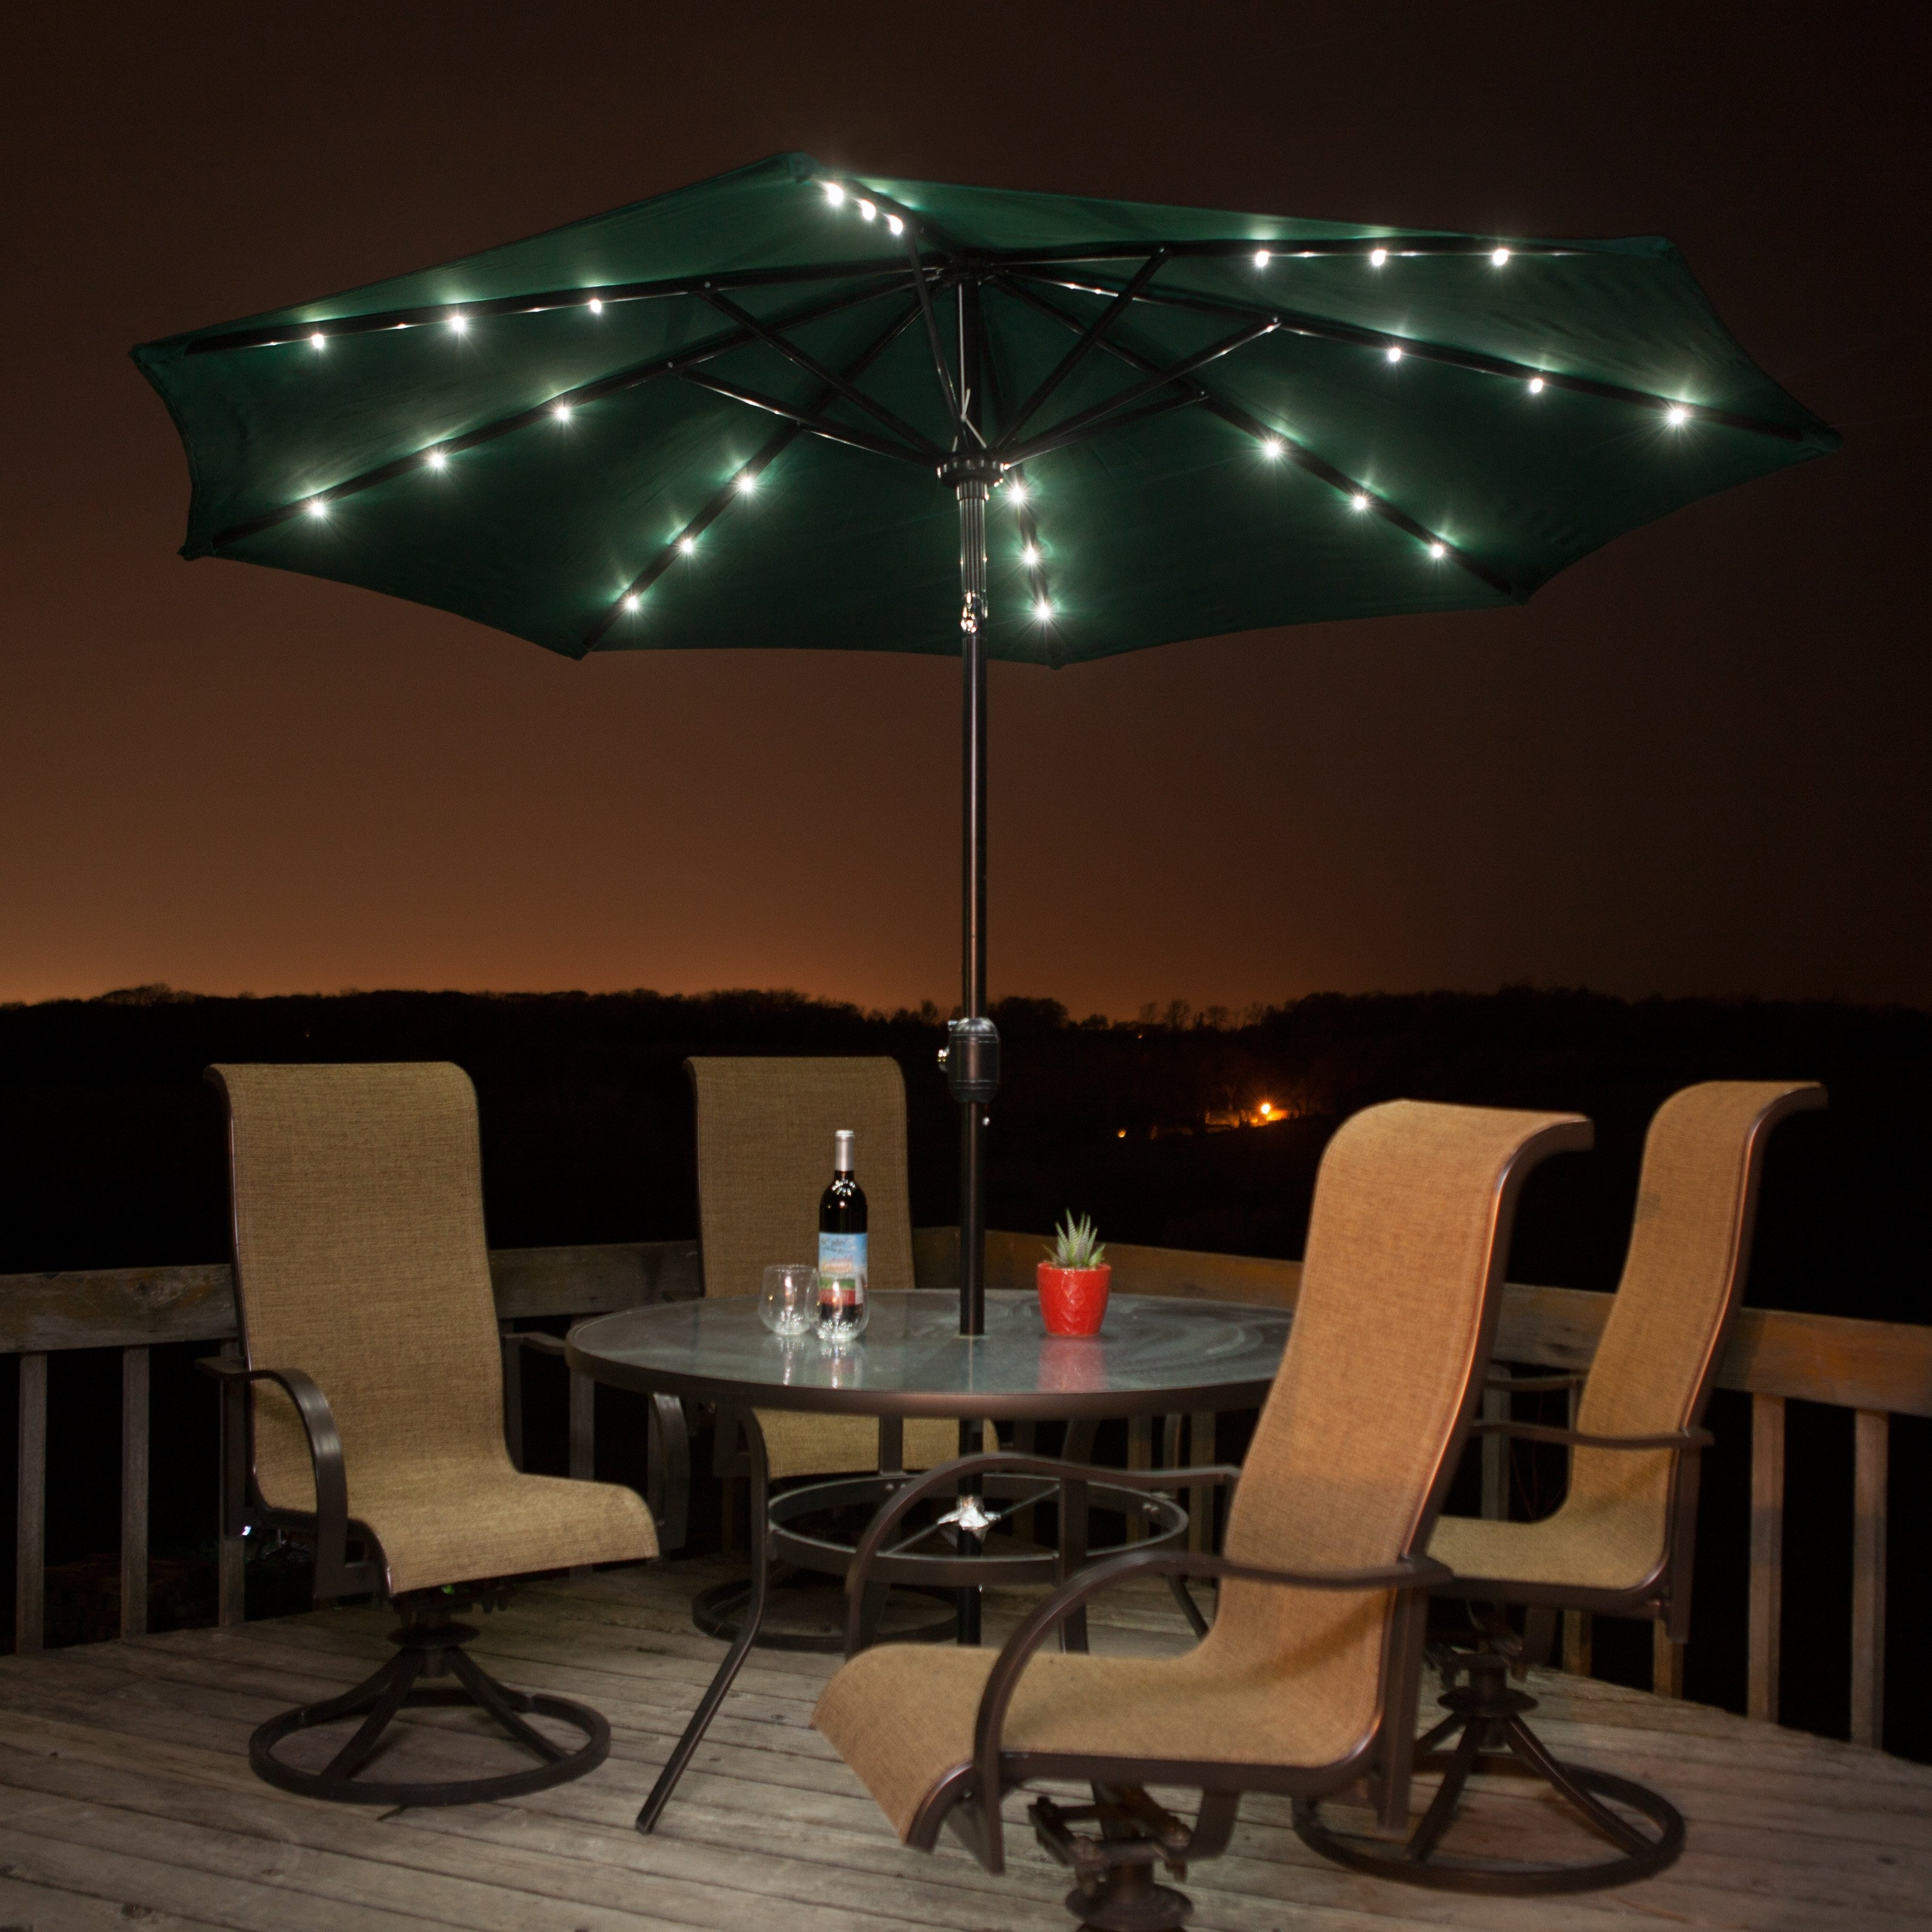 Popular Lighted Patio Umbrellas — Mistikcamping Home Design : Different Inside Lighted Umbrellas For Patio (View 15 of 20)